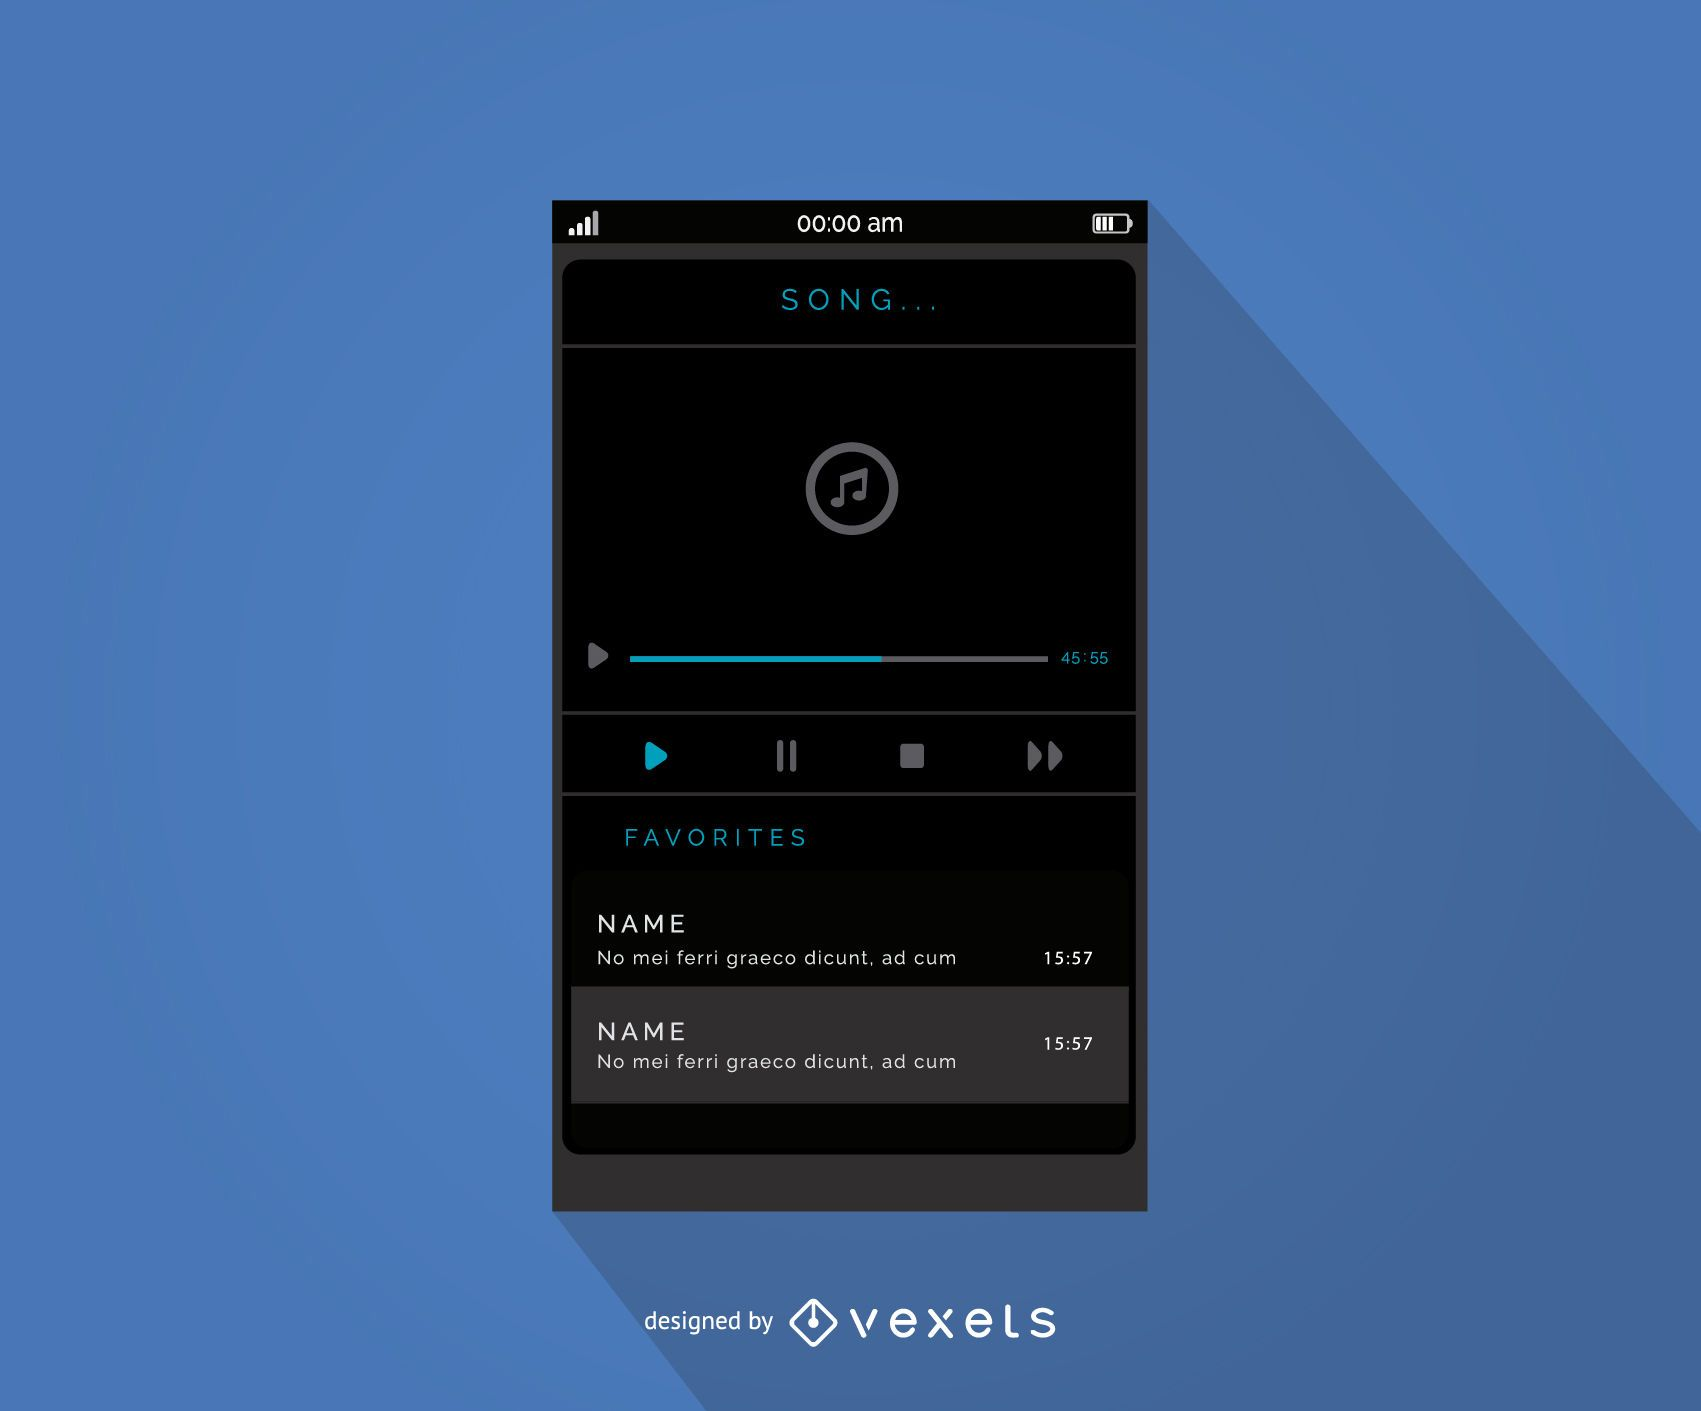 Mobile music player interface design